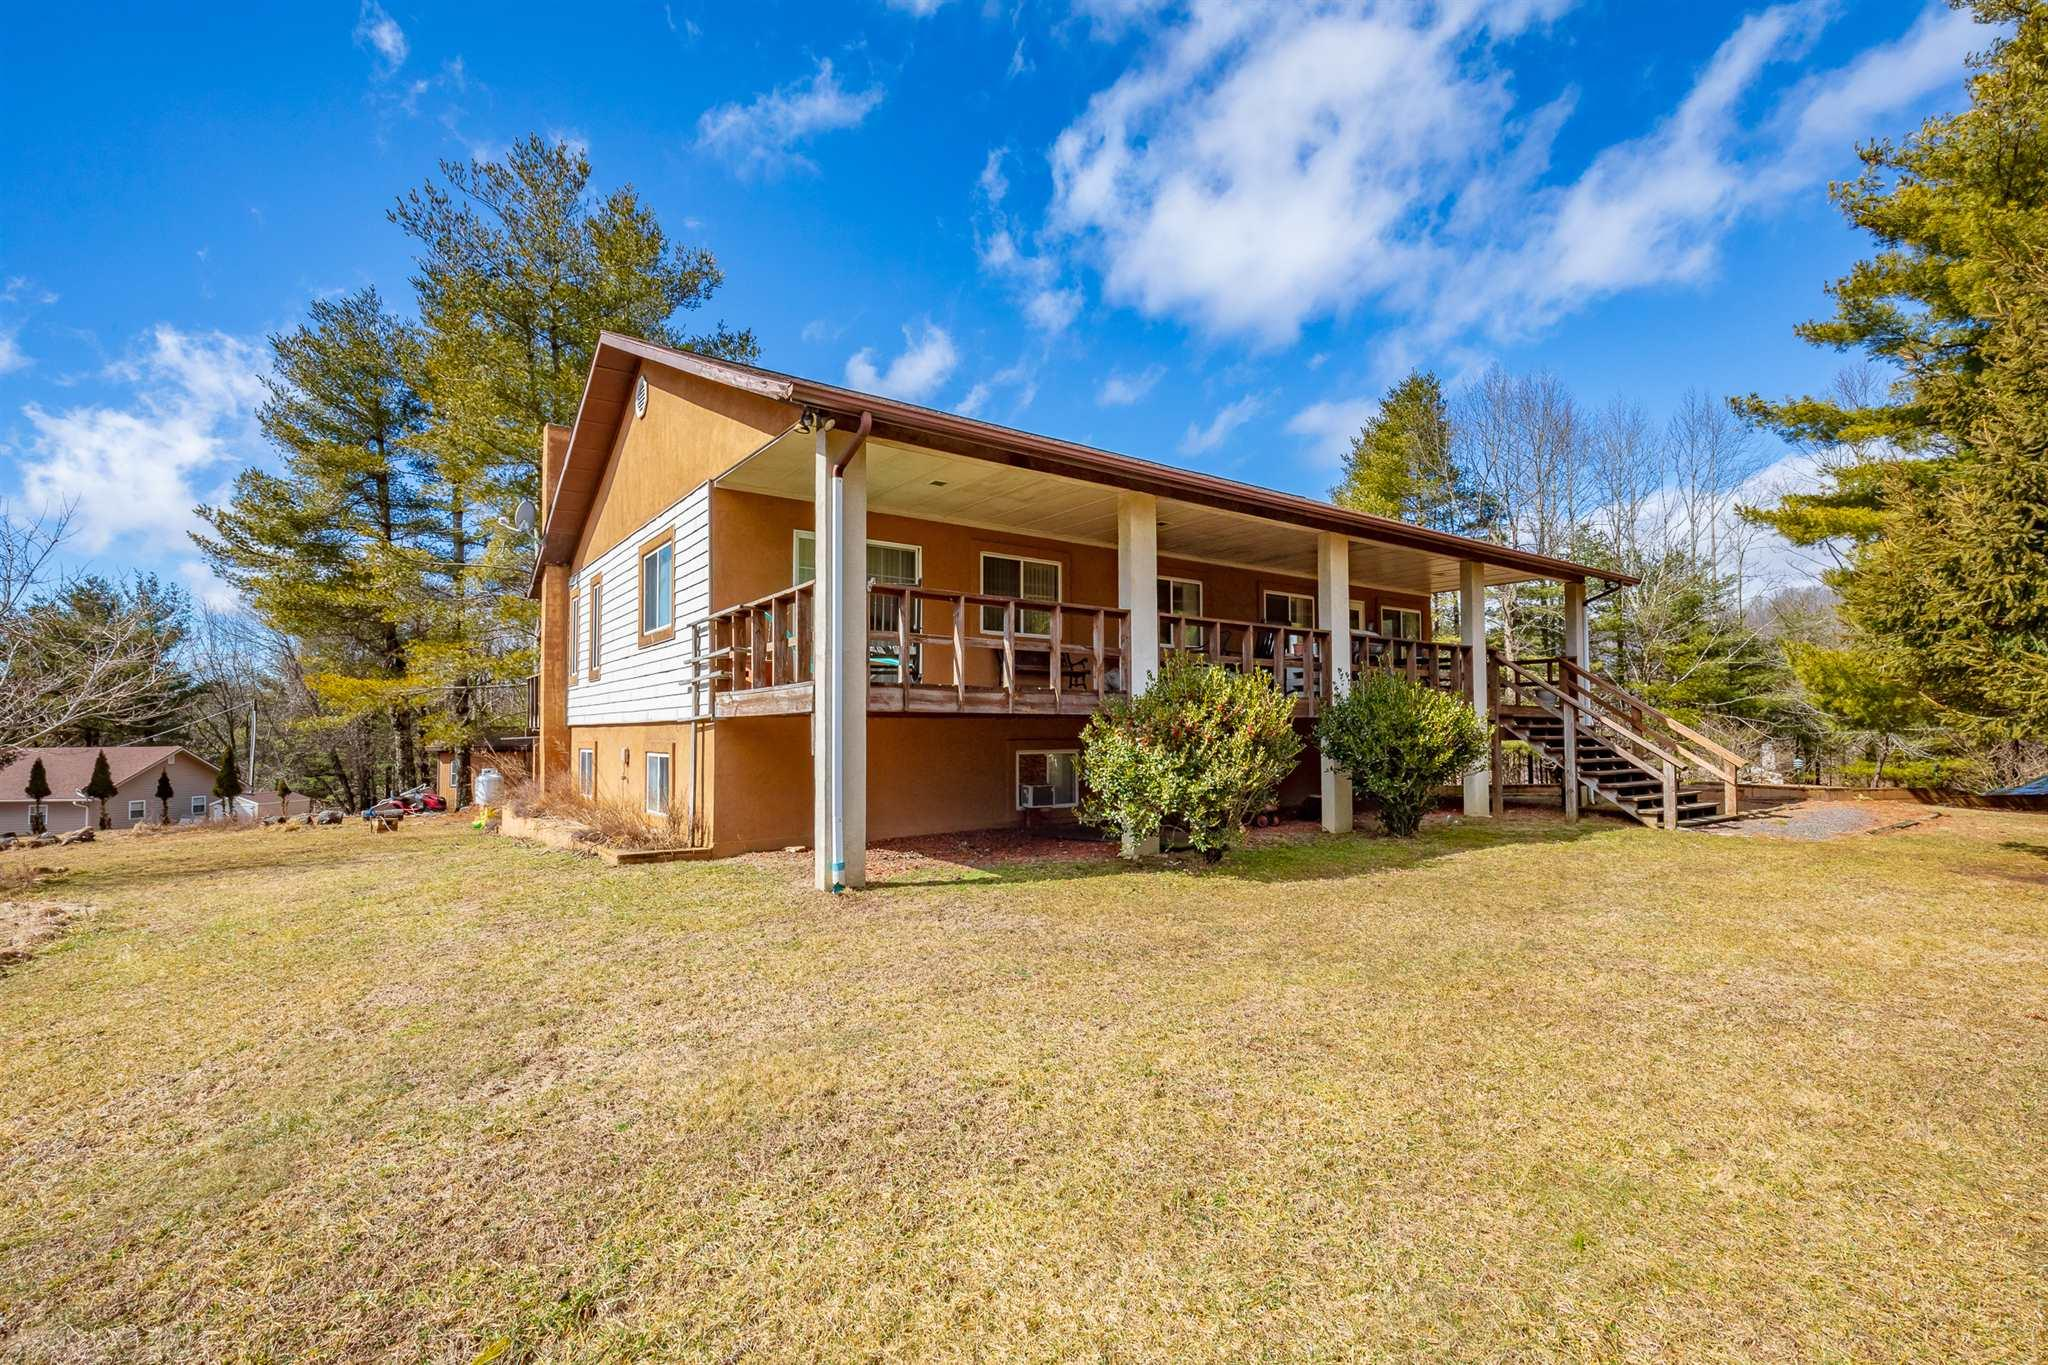 This secluded home has a beautiful nice size, level yard with plenty of room for a garden. On the front is a VERY large covered porch for you to enjoy the quiet and the wildlife. Inside you'll find a living room with nice size fire place, dining room and large kitchen with oak cabinets that will give you plenty of storage and a nice window over the sink. On the other side of the home you'll find a huge master bedroom and master bath -- all of these on the main floor. On the basement level you have two rooms (one does not have heat), full bath and a family room with wood stove. The two car attached garage is a very nice size with actual room for your cars as well as the laundry. With some TLC this could be your perfect second home for large families or full time home. Also possible purchase of additional 3 bed 2 bath cabin.